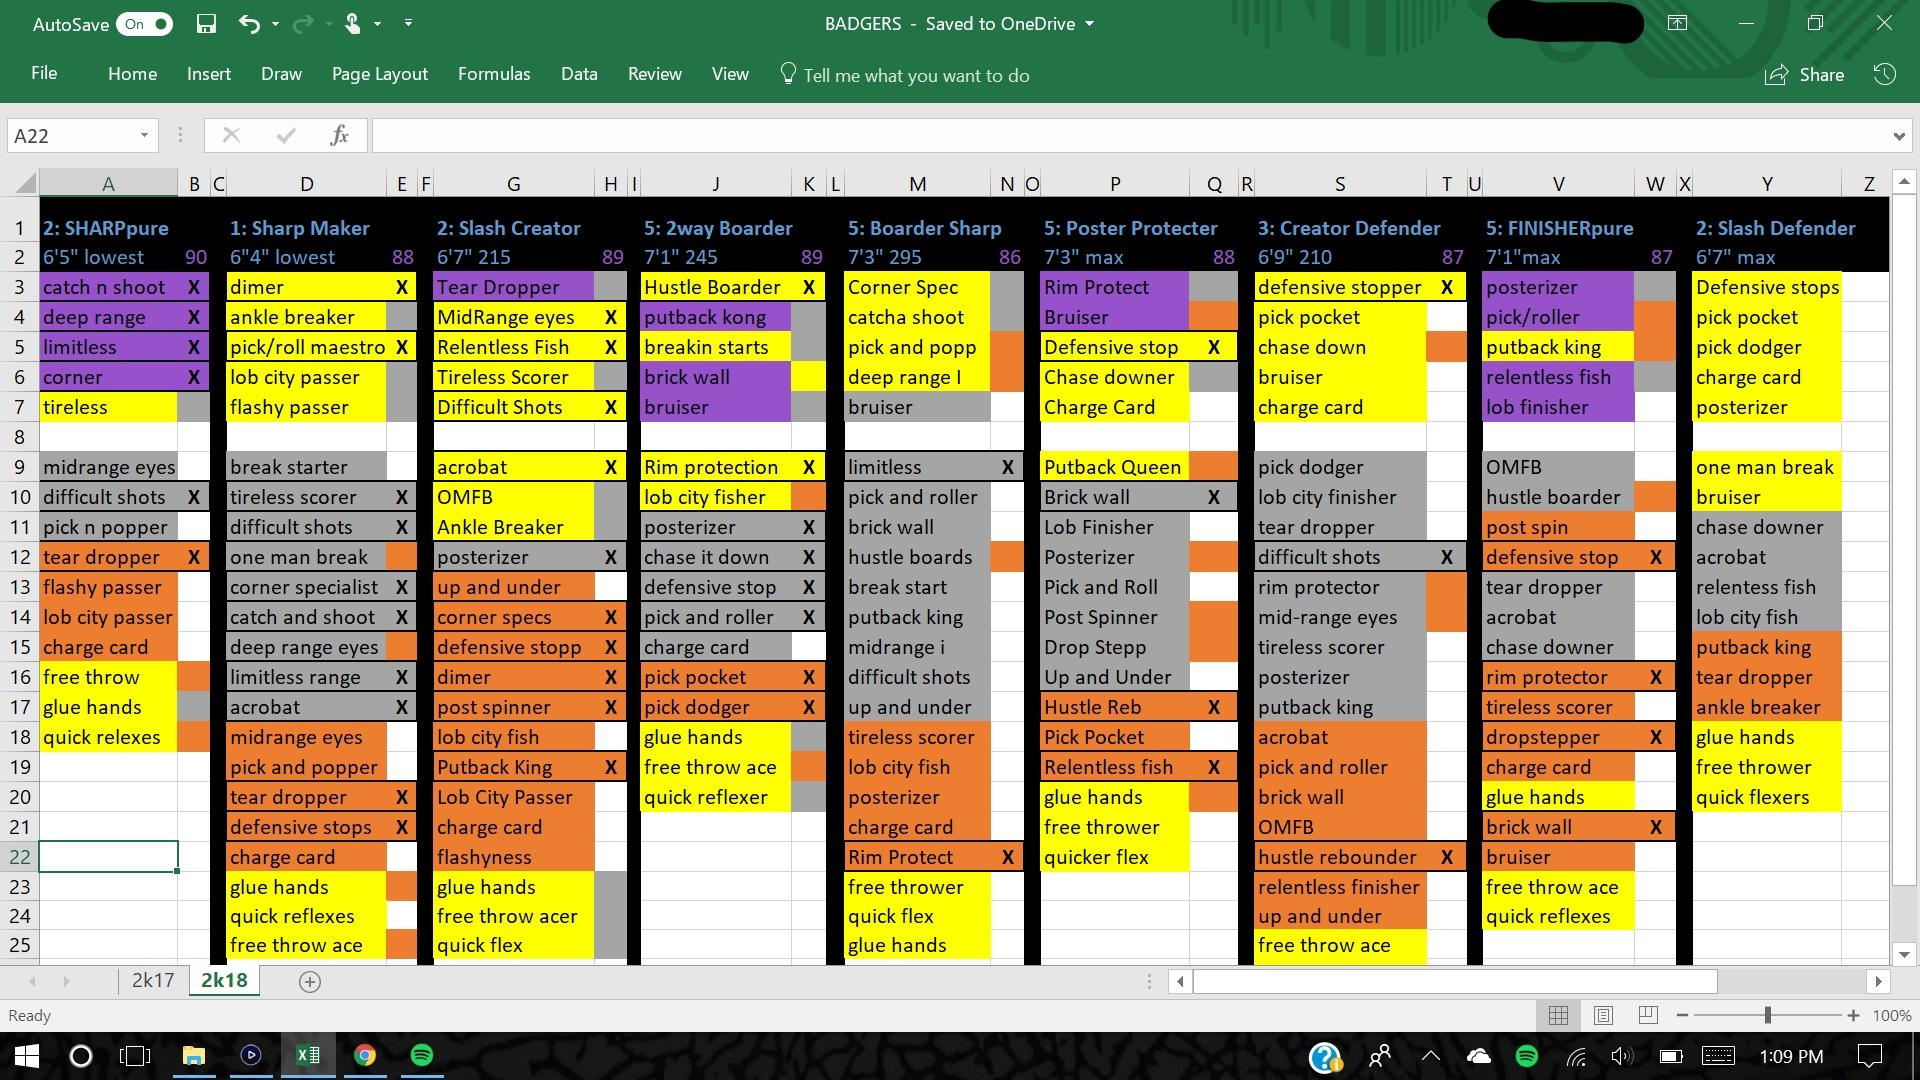 Nba Schedule Spreadsheet With Regard To Ocd Spreadsheet I Made To Keep Track Of My Badges/players : Nba2K